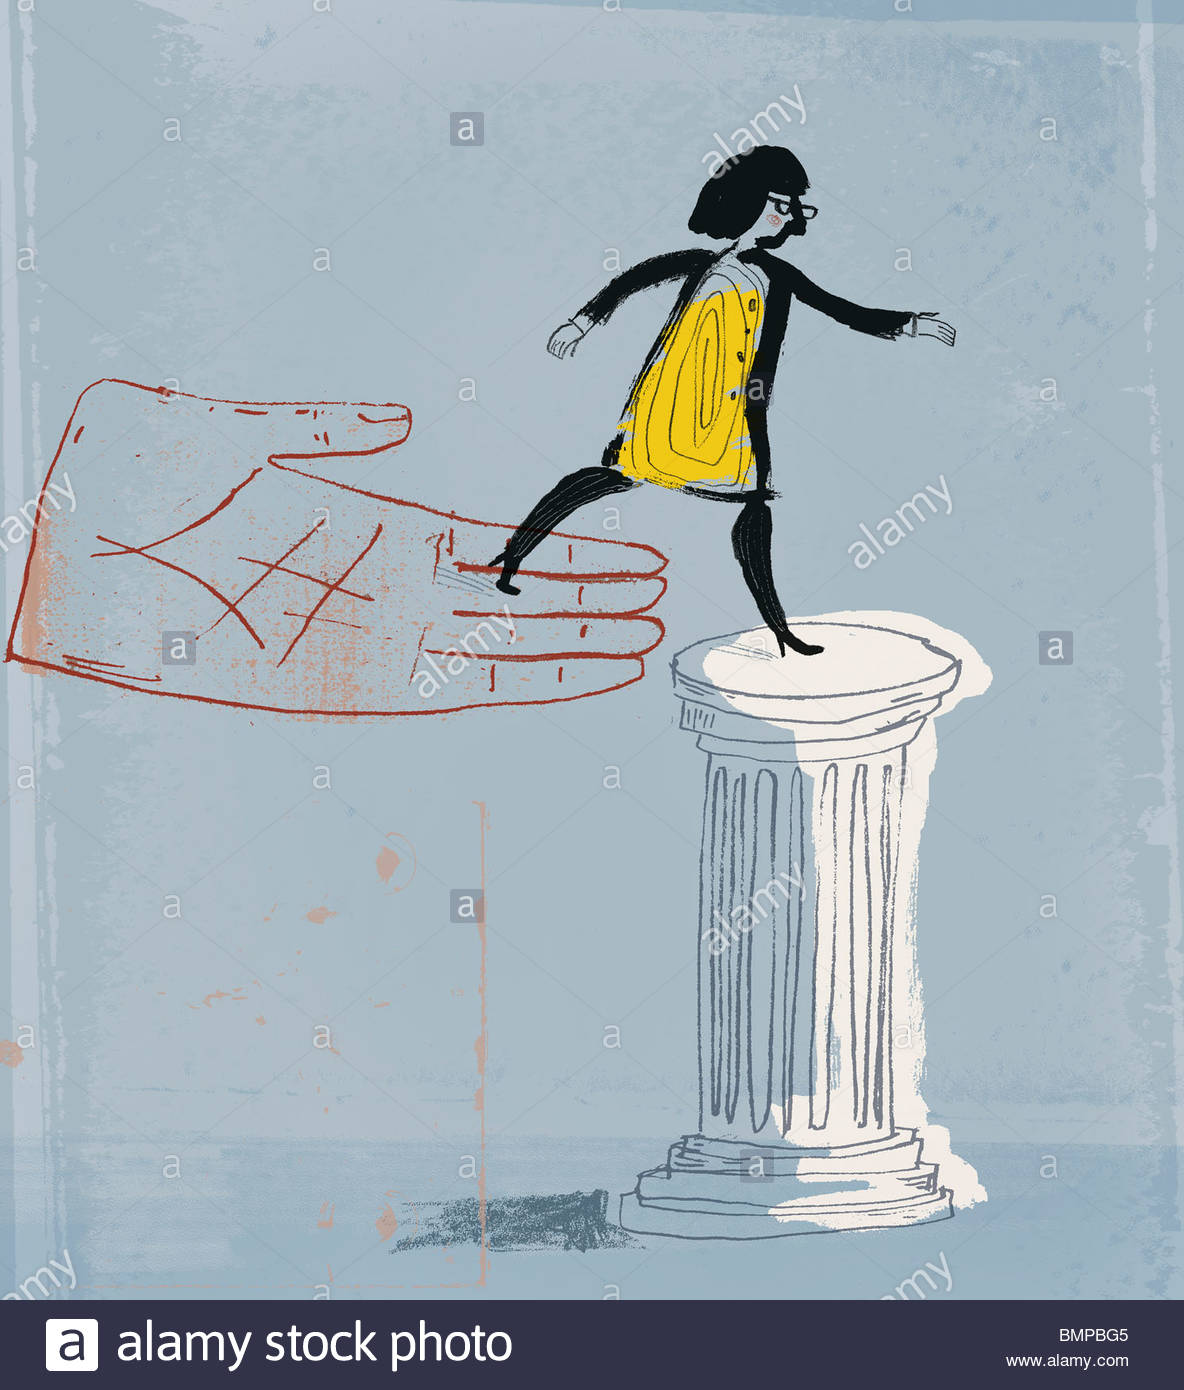 Large hand placing woman on pedestal - Stock Image